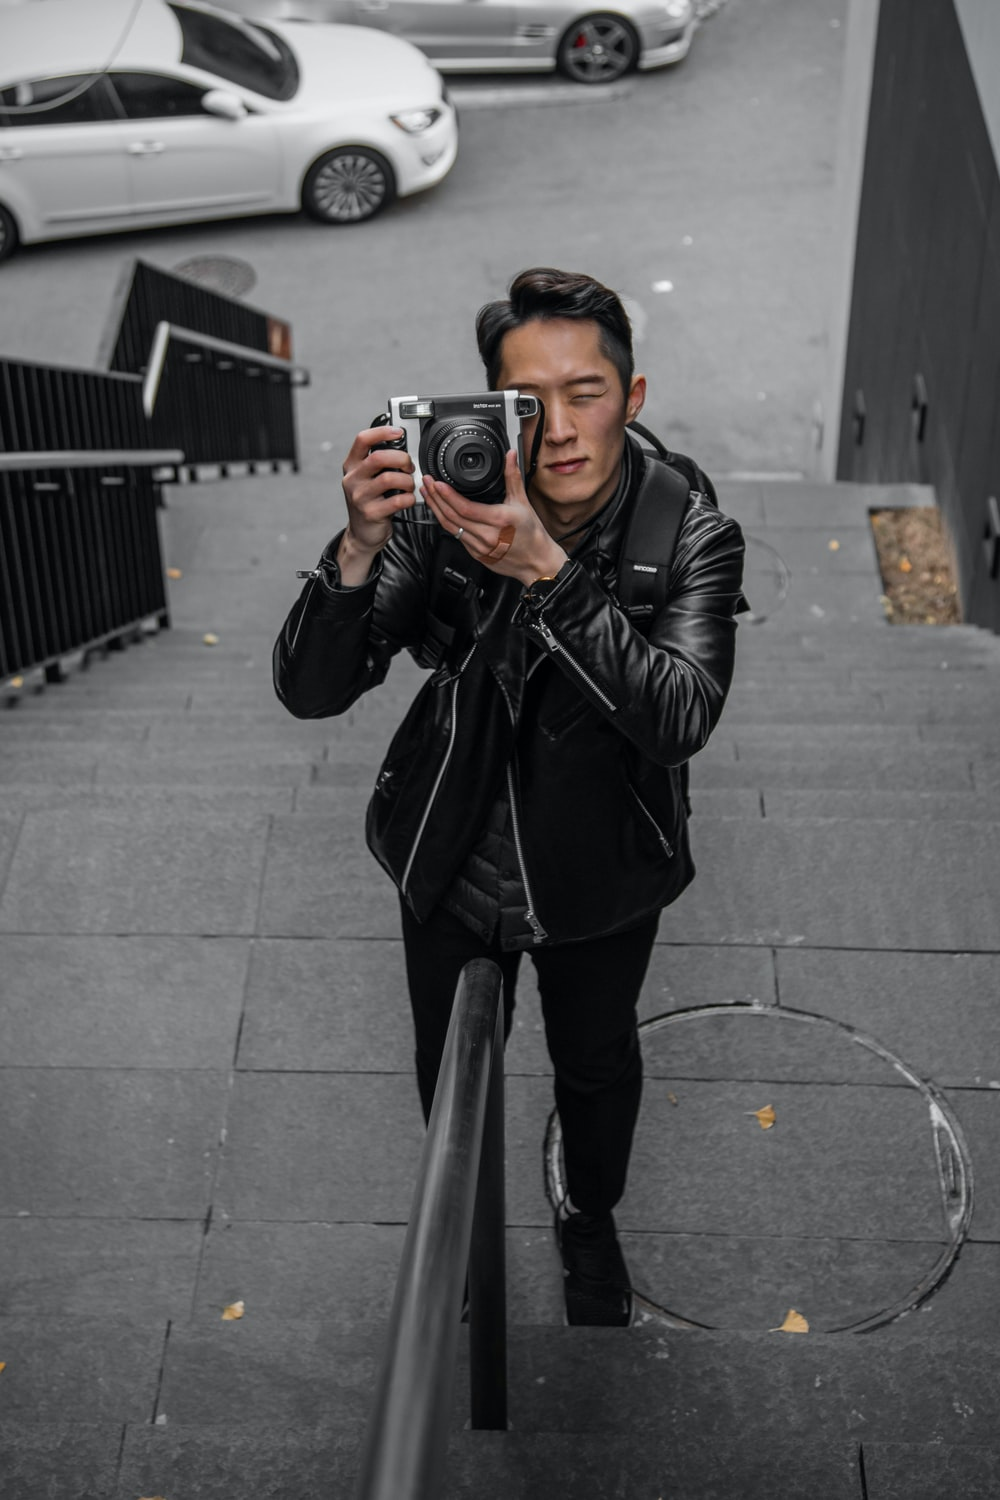 shallow focus photo of man in black leather jacket using camera